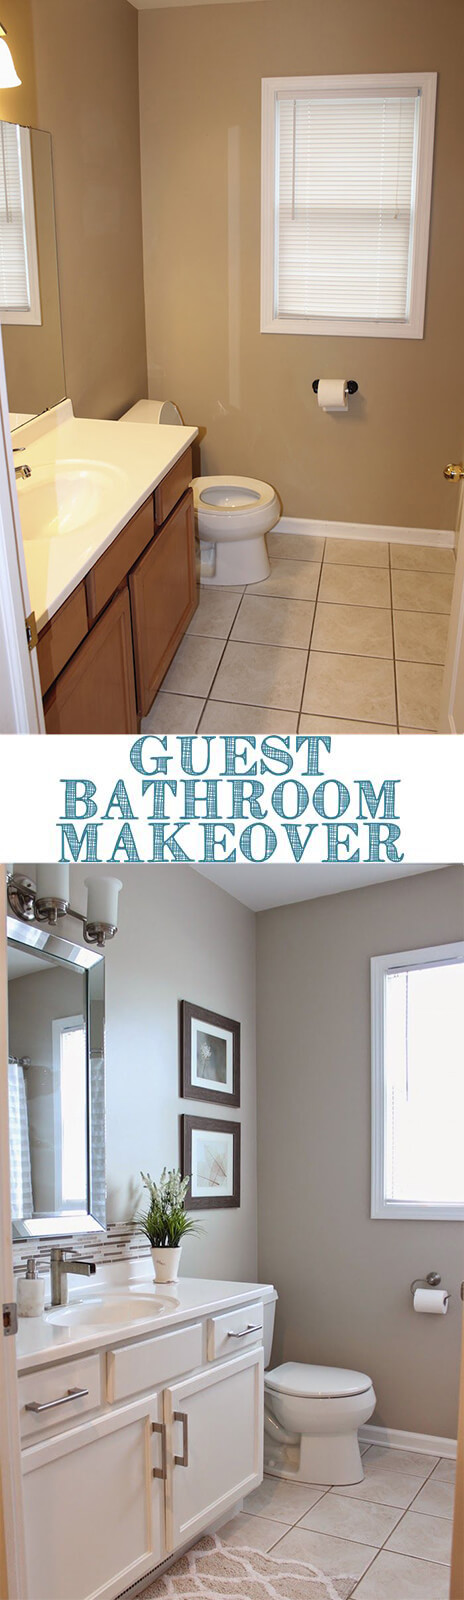 28 Best Budget Friendly Bathroom Makeover Ideas and ...